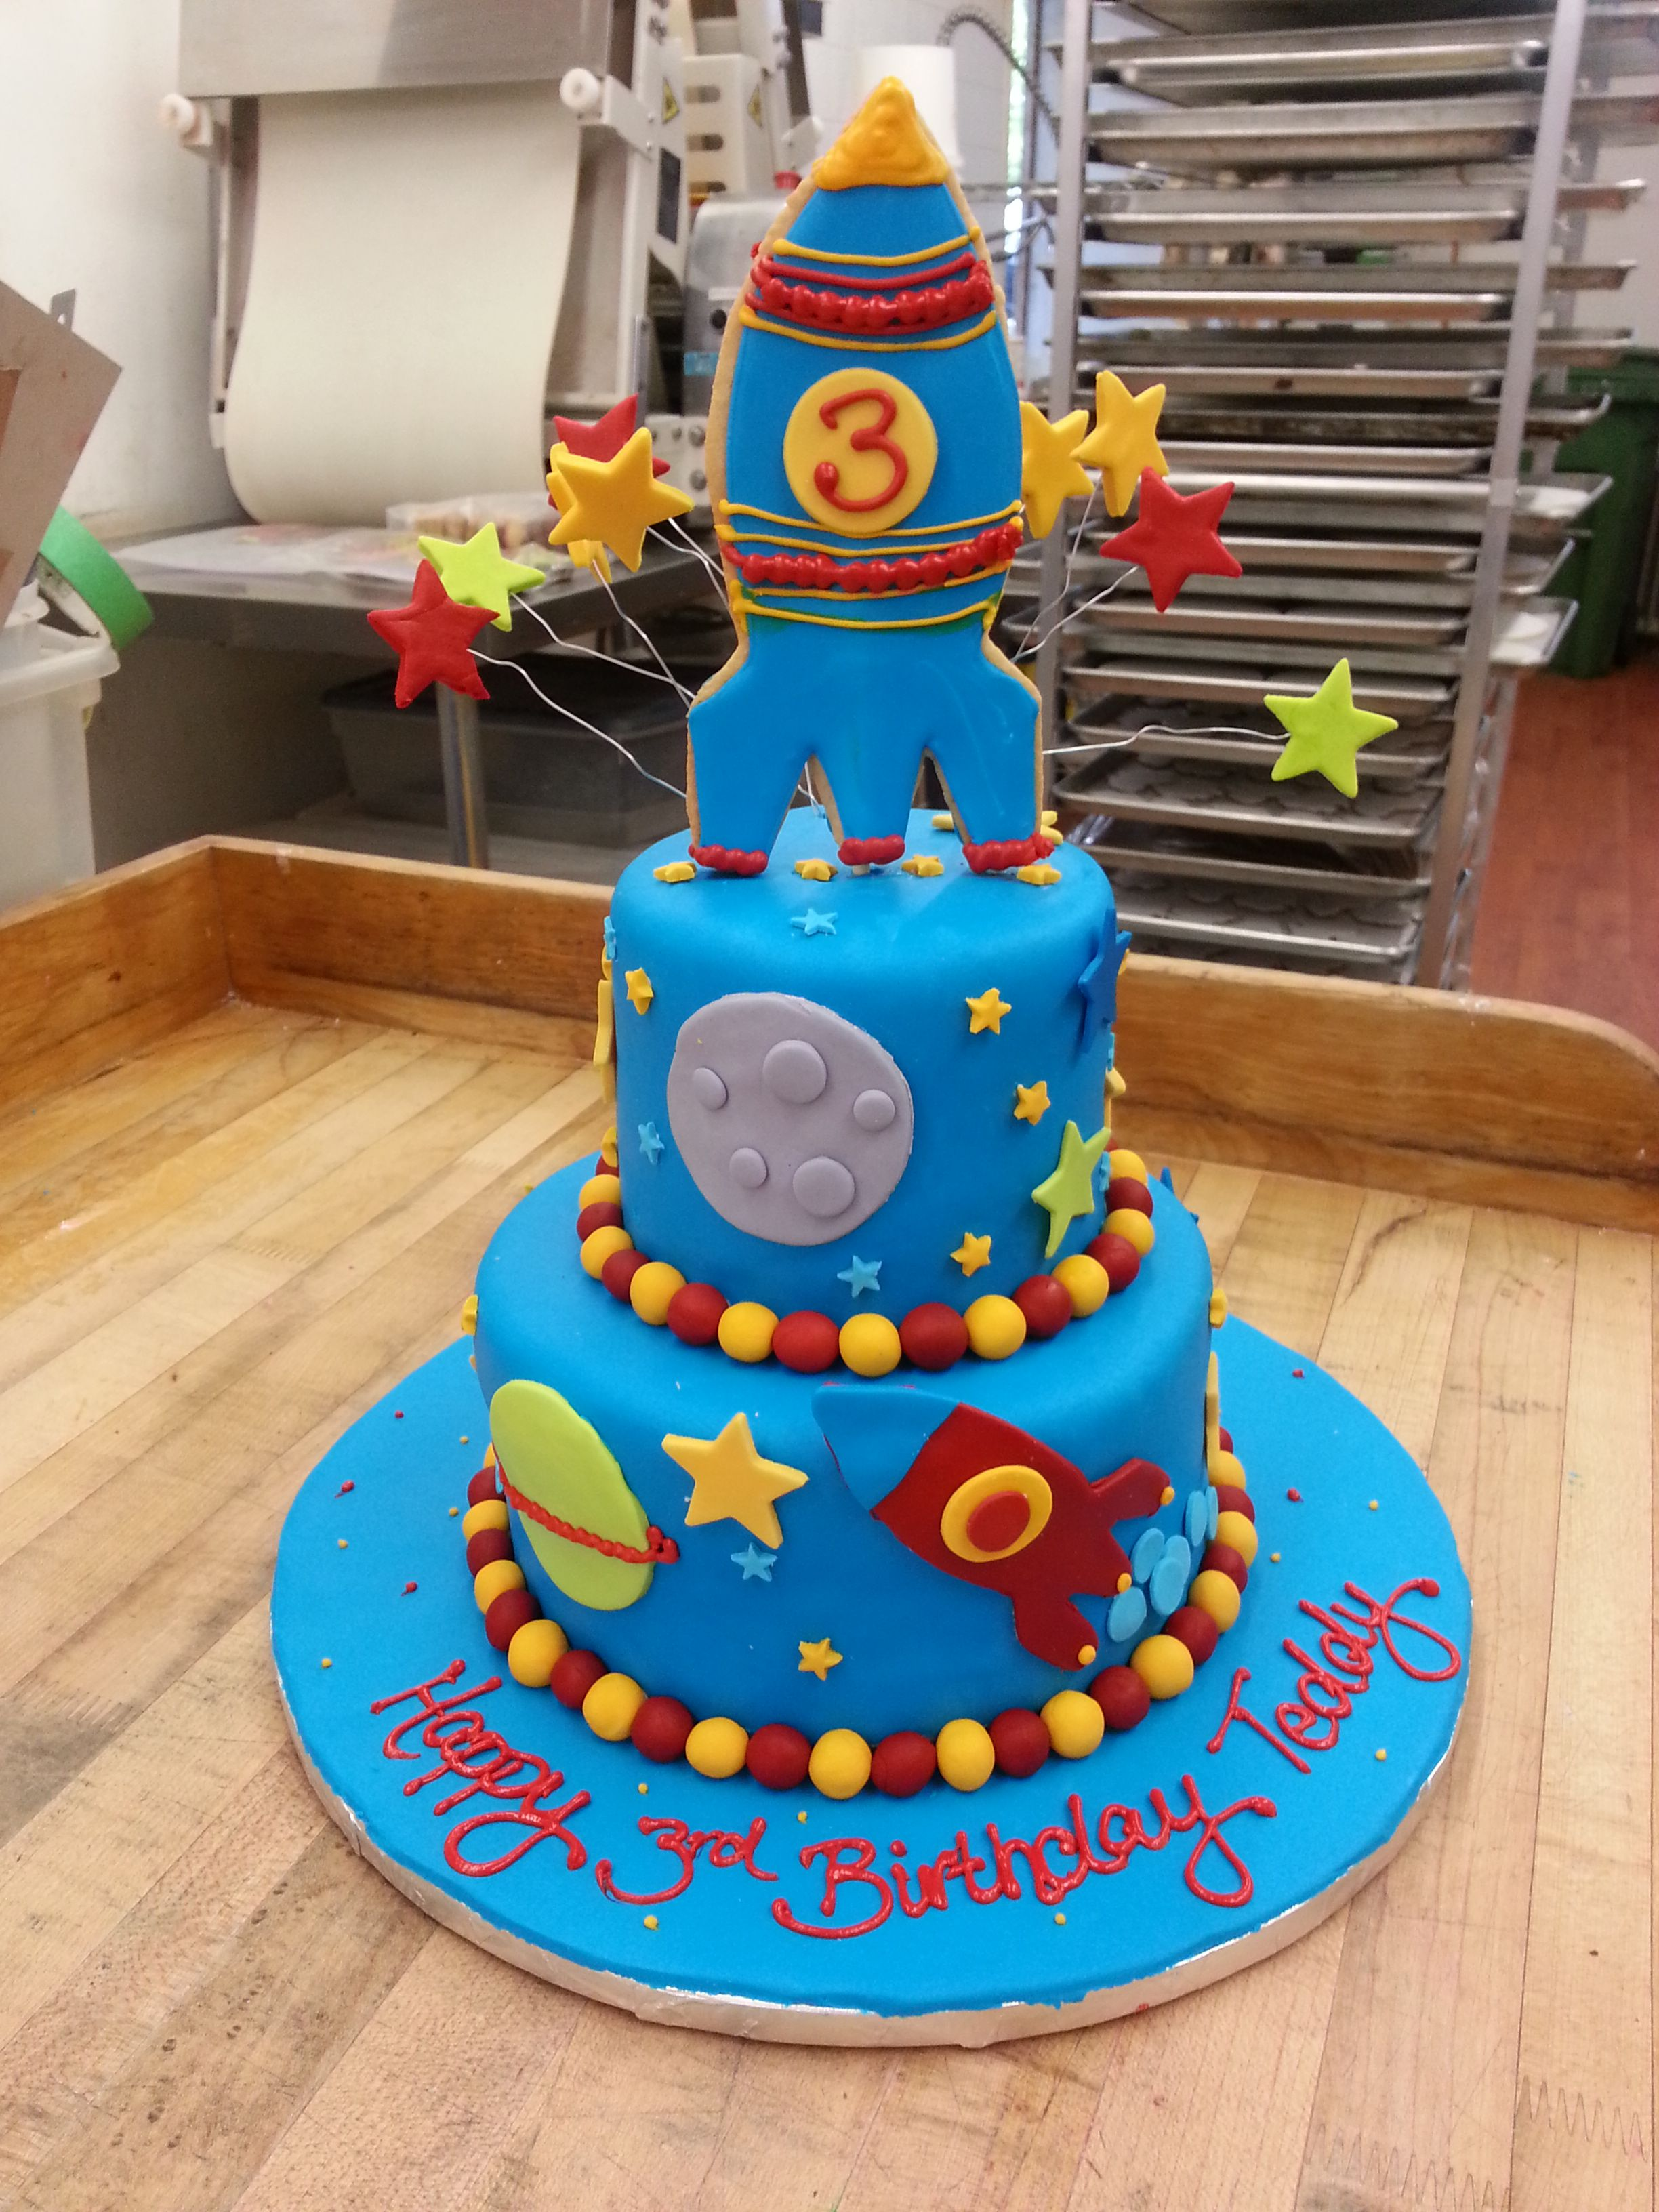 Terrific Houston We Have Lift Off A Yummy Space Rocket Cake With Images Birthday Cards Printable Nowaargucafe Filternl